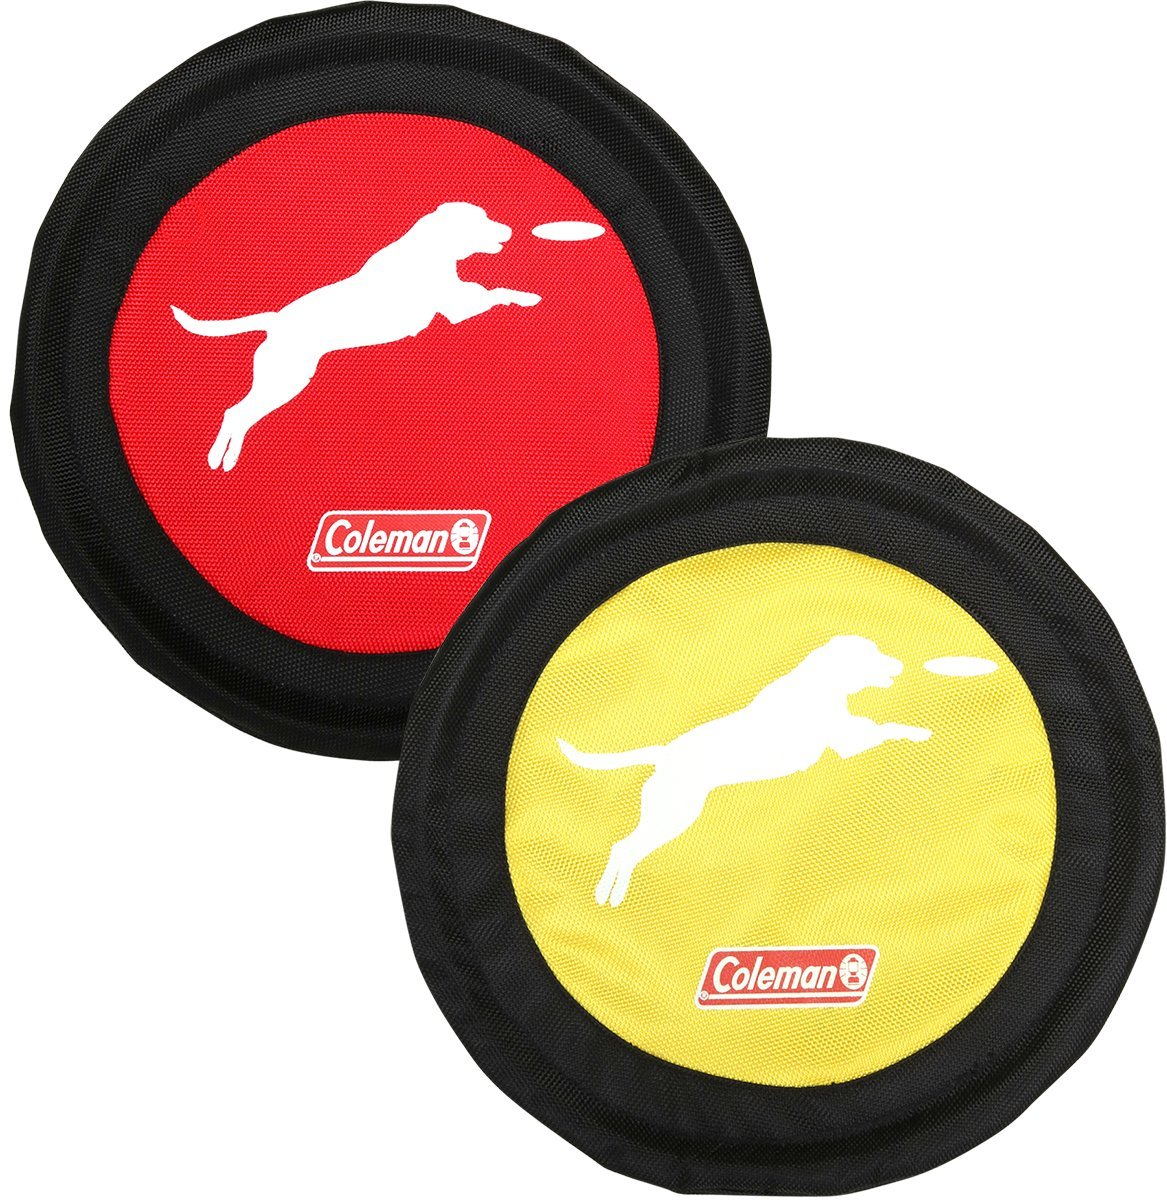 Coleman Dog Flying Disc Frisbee, Red/Yellow' by Coleman